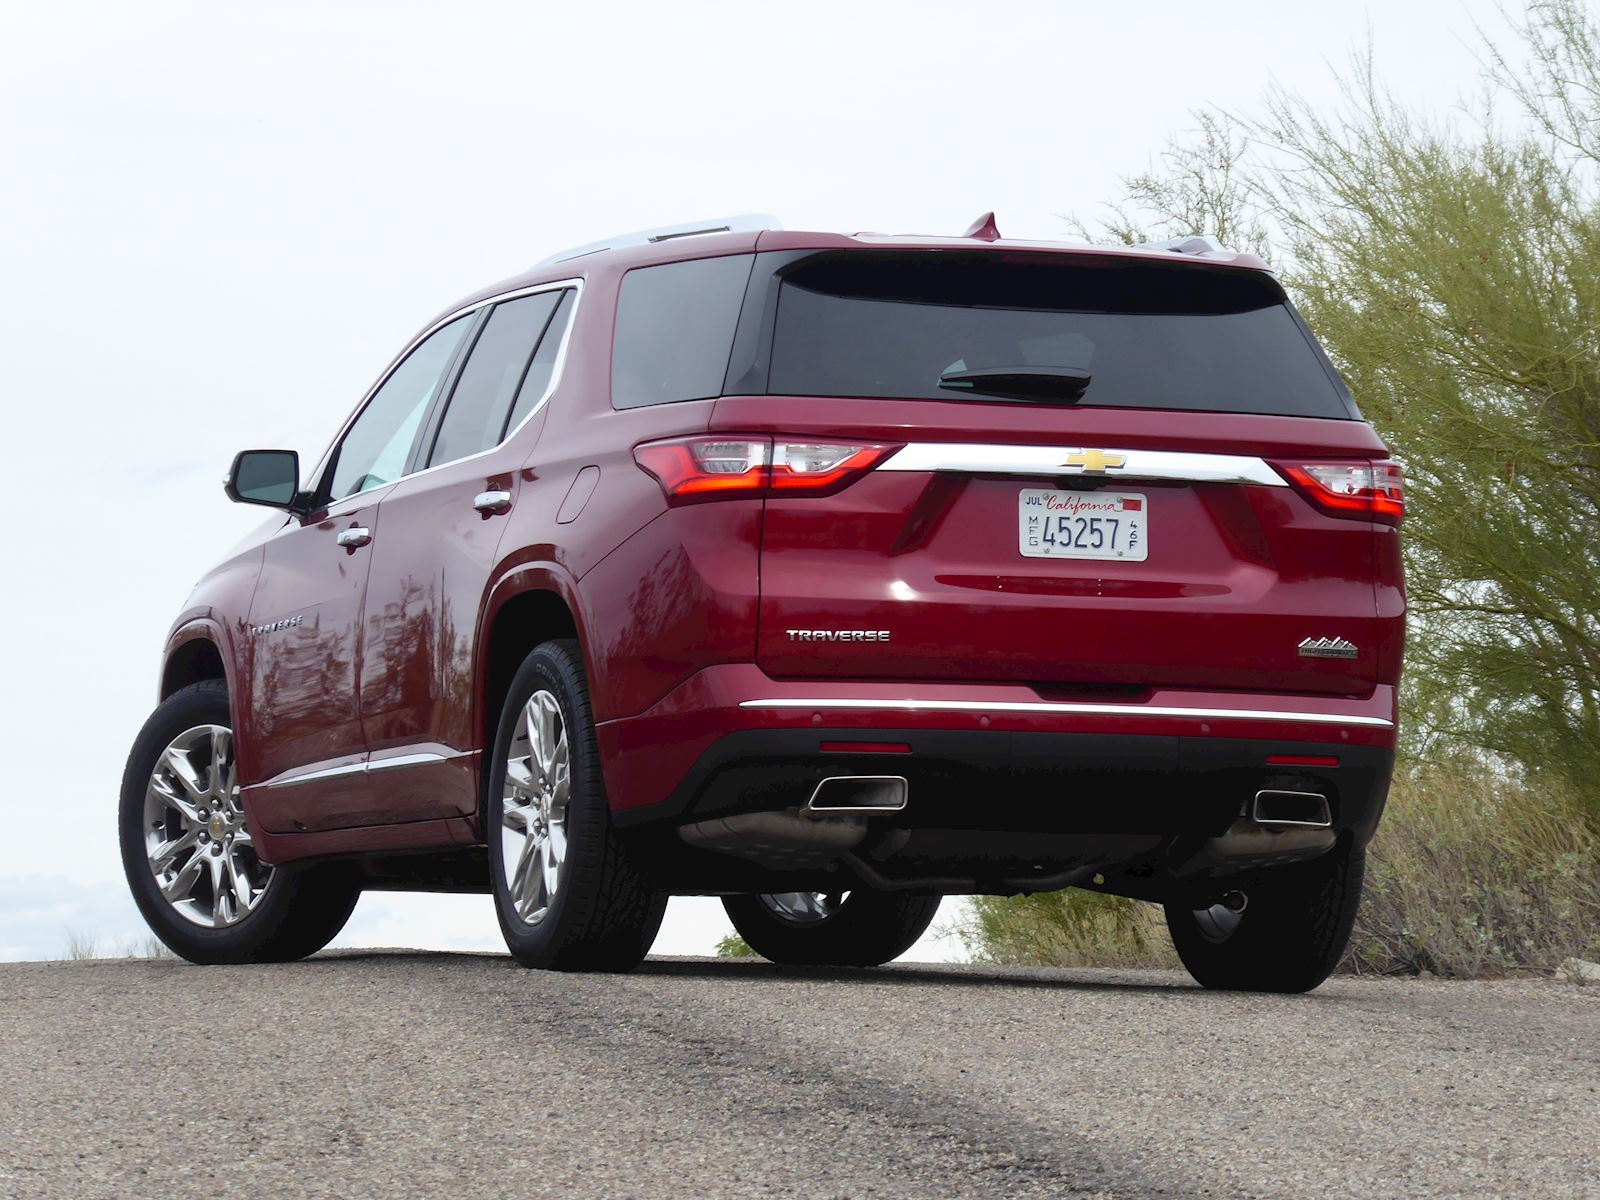 2020 Chevrolet Traverse rear view